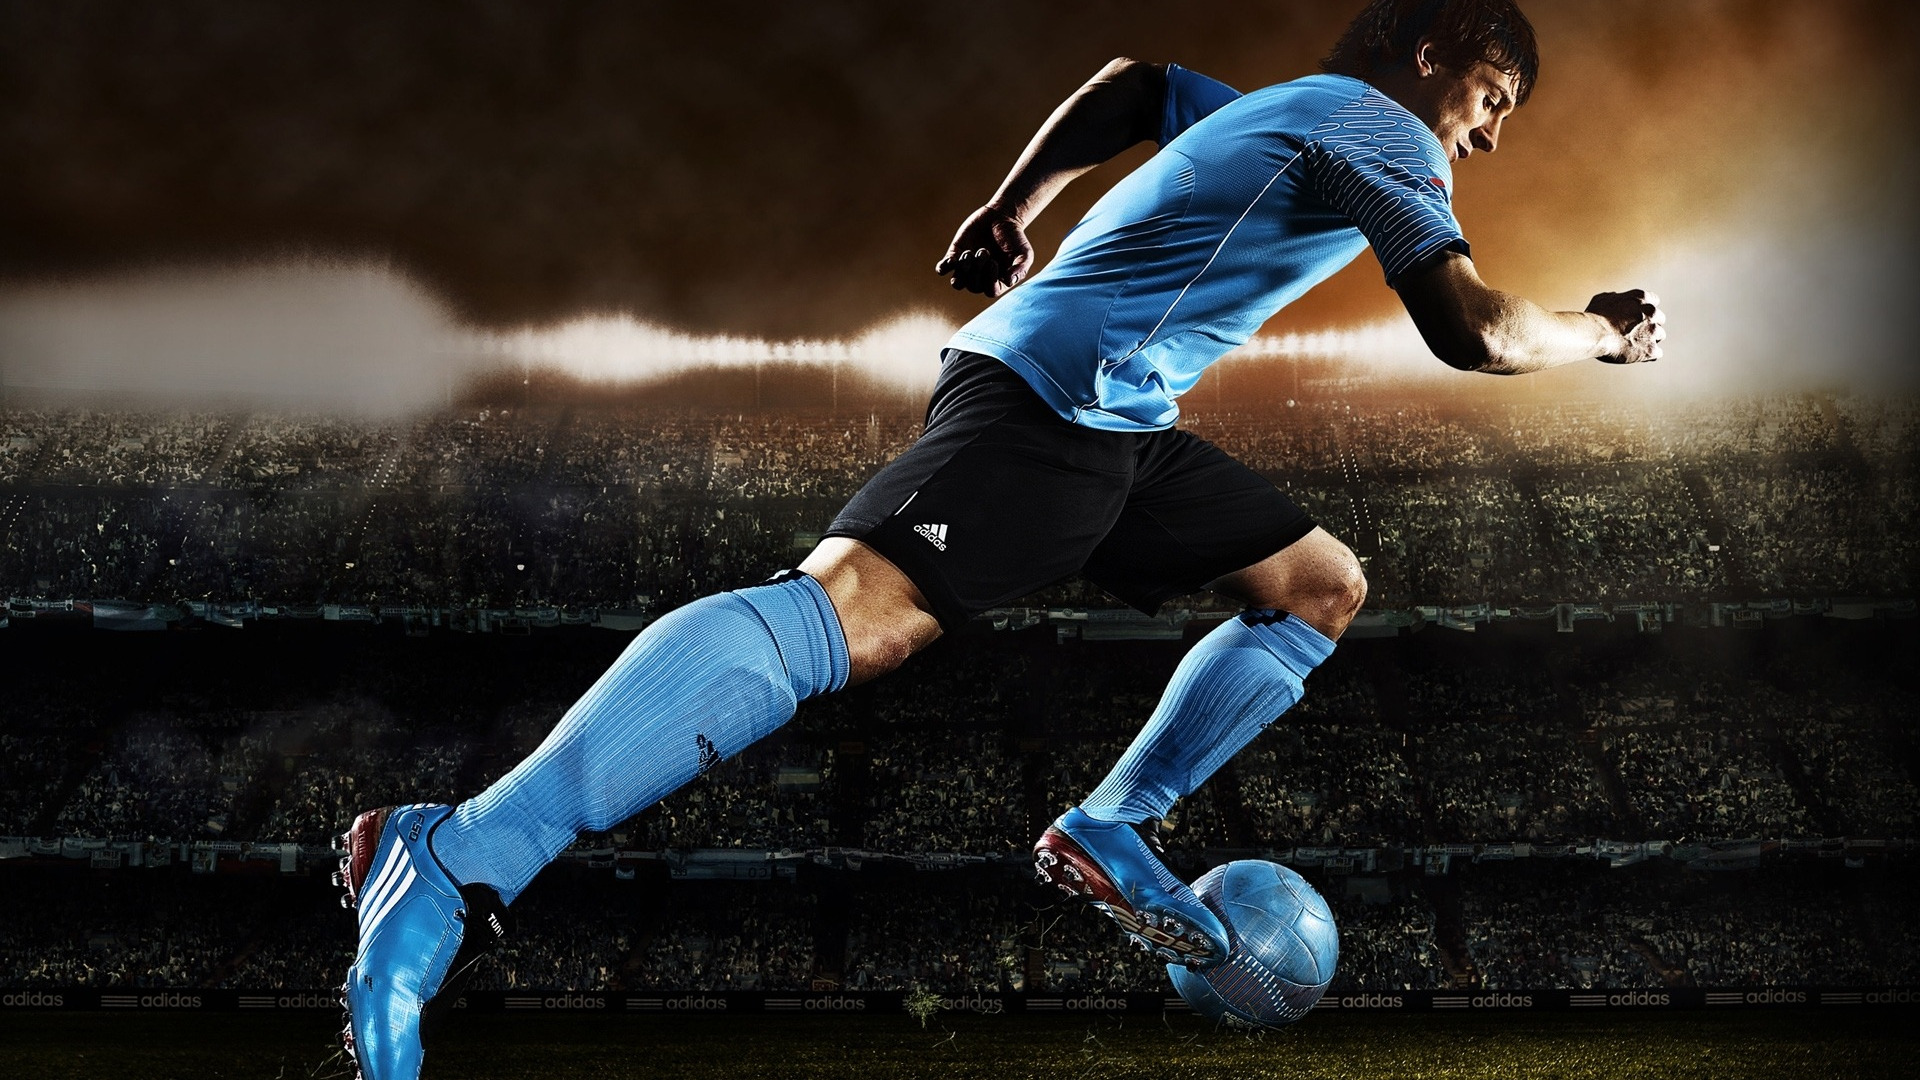 cool soccer wallpapers - HD 1920×1080